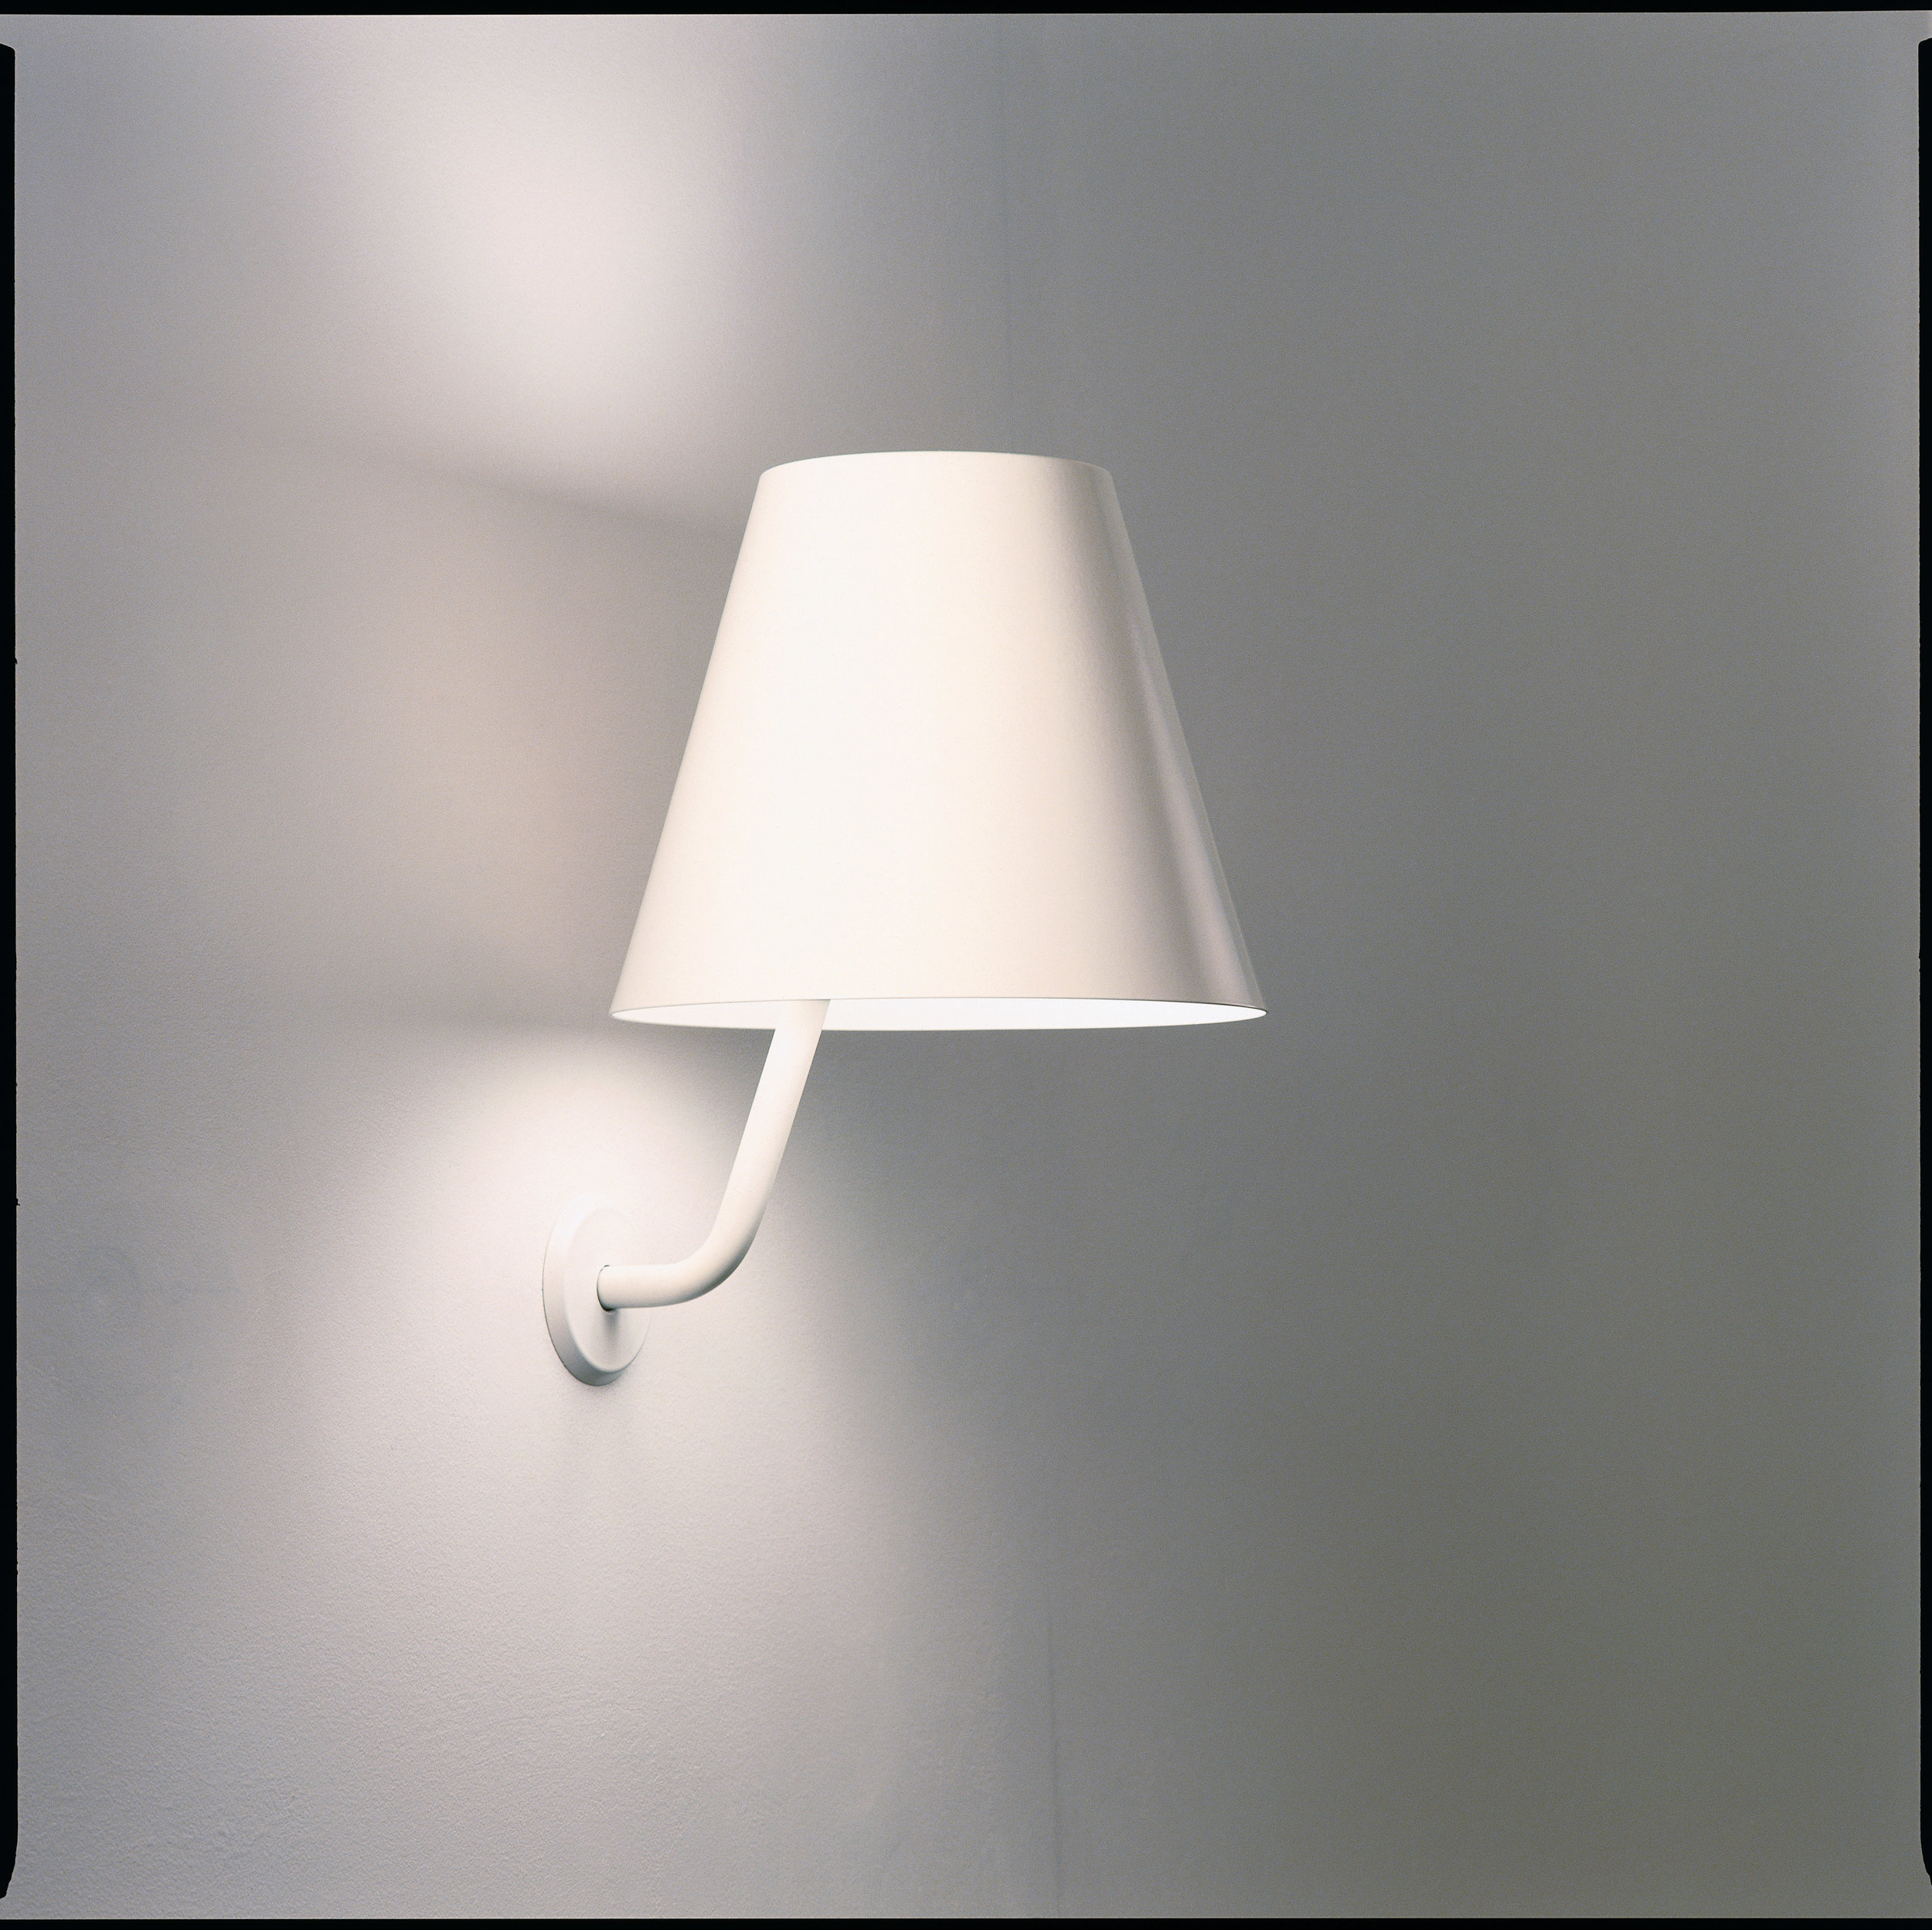 ISM Objects_Shady Wall_White_01.jpg